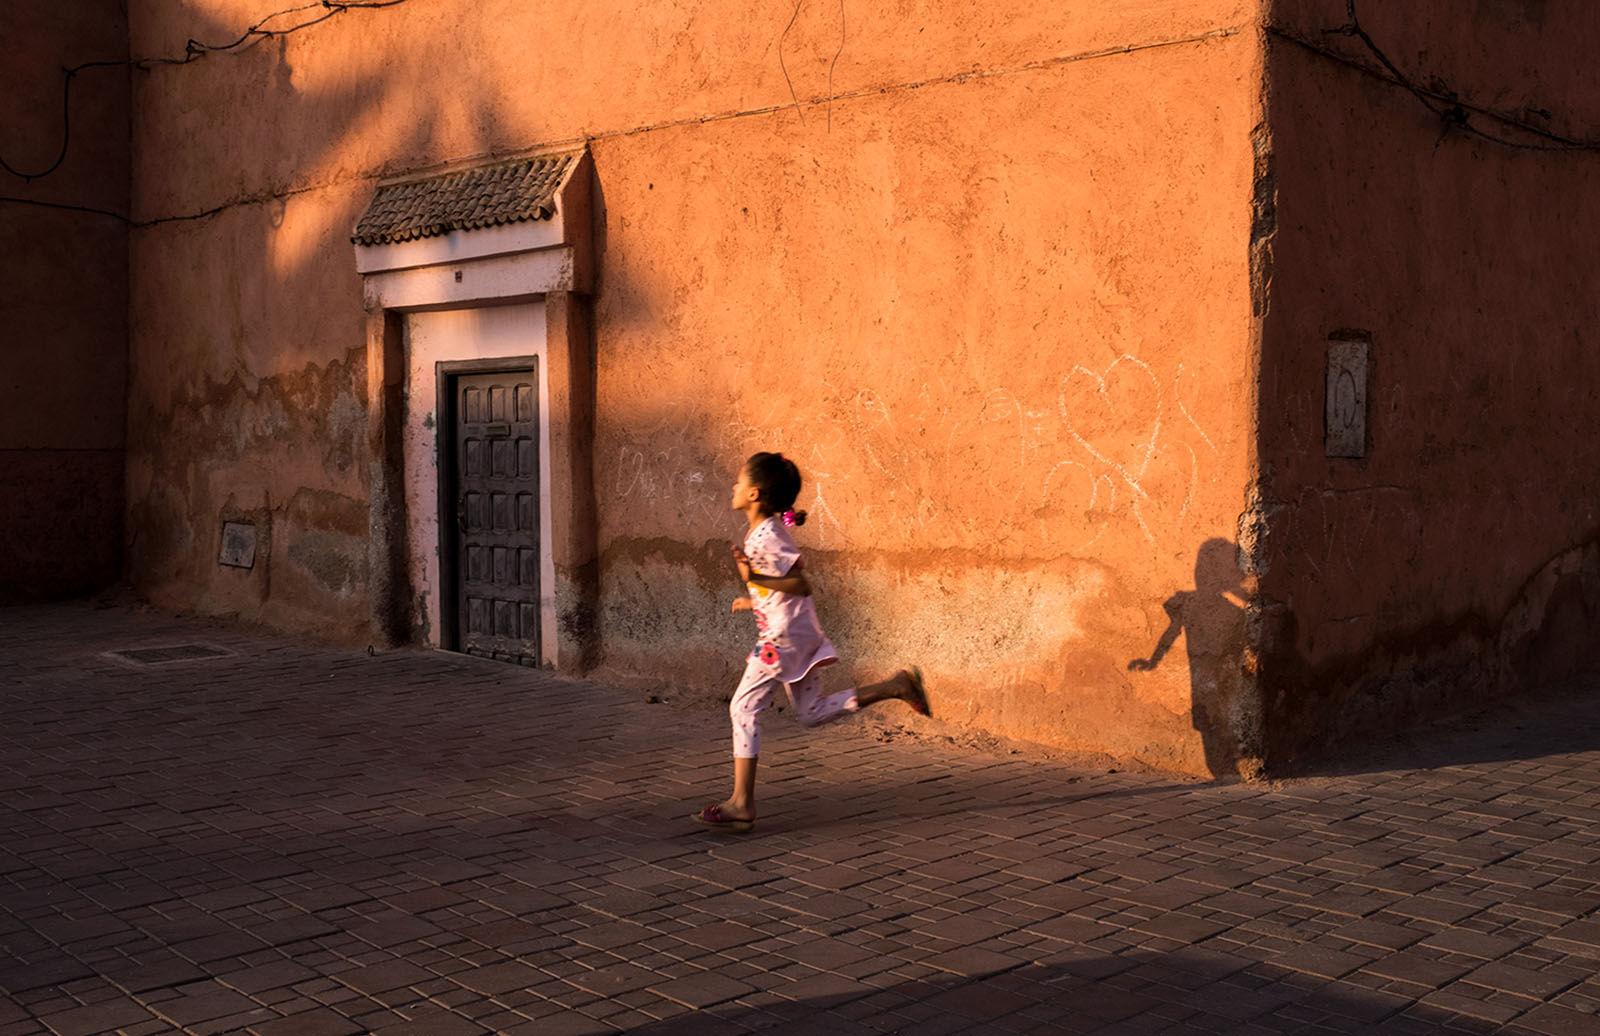 Girl running in Marakech, Morocco